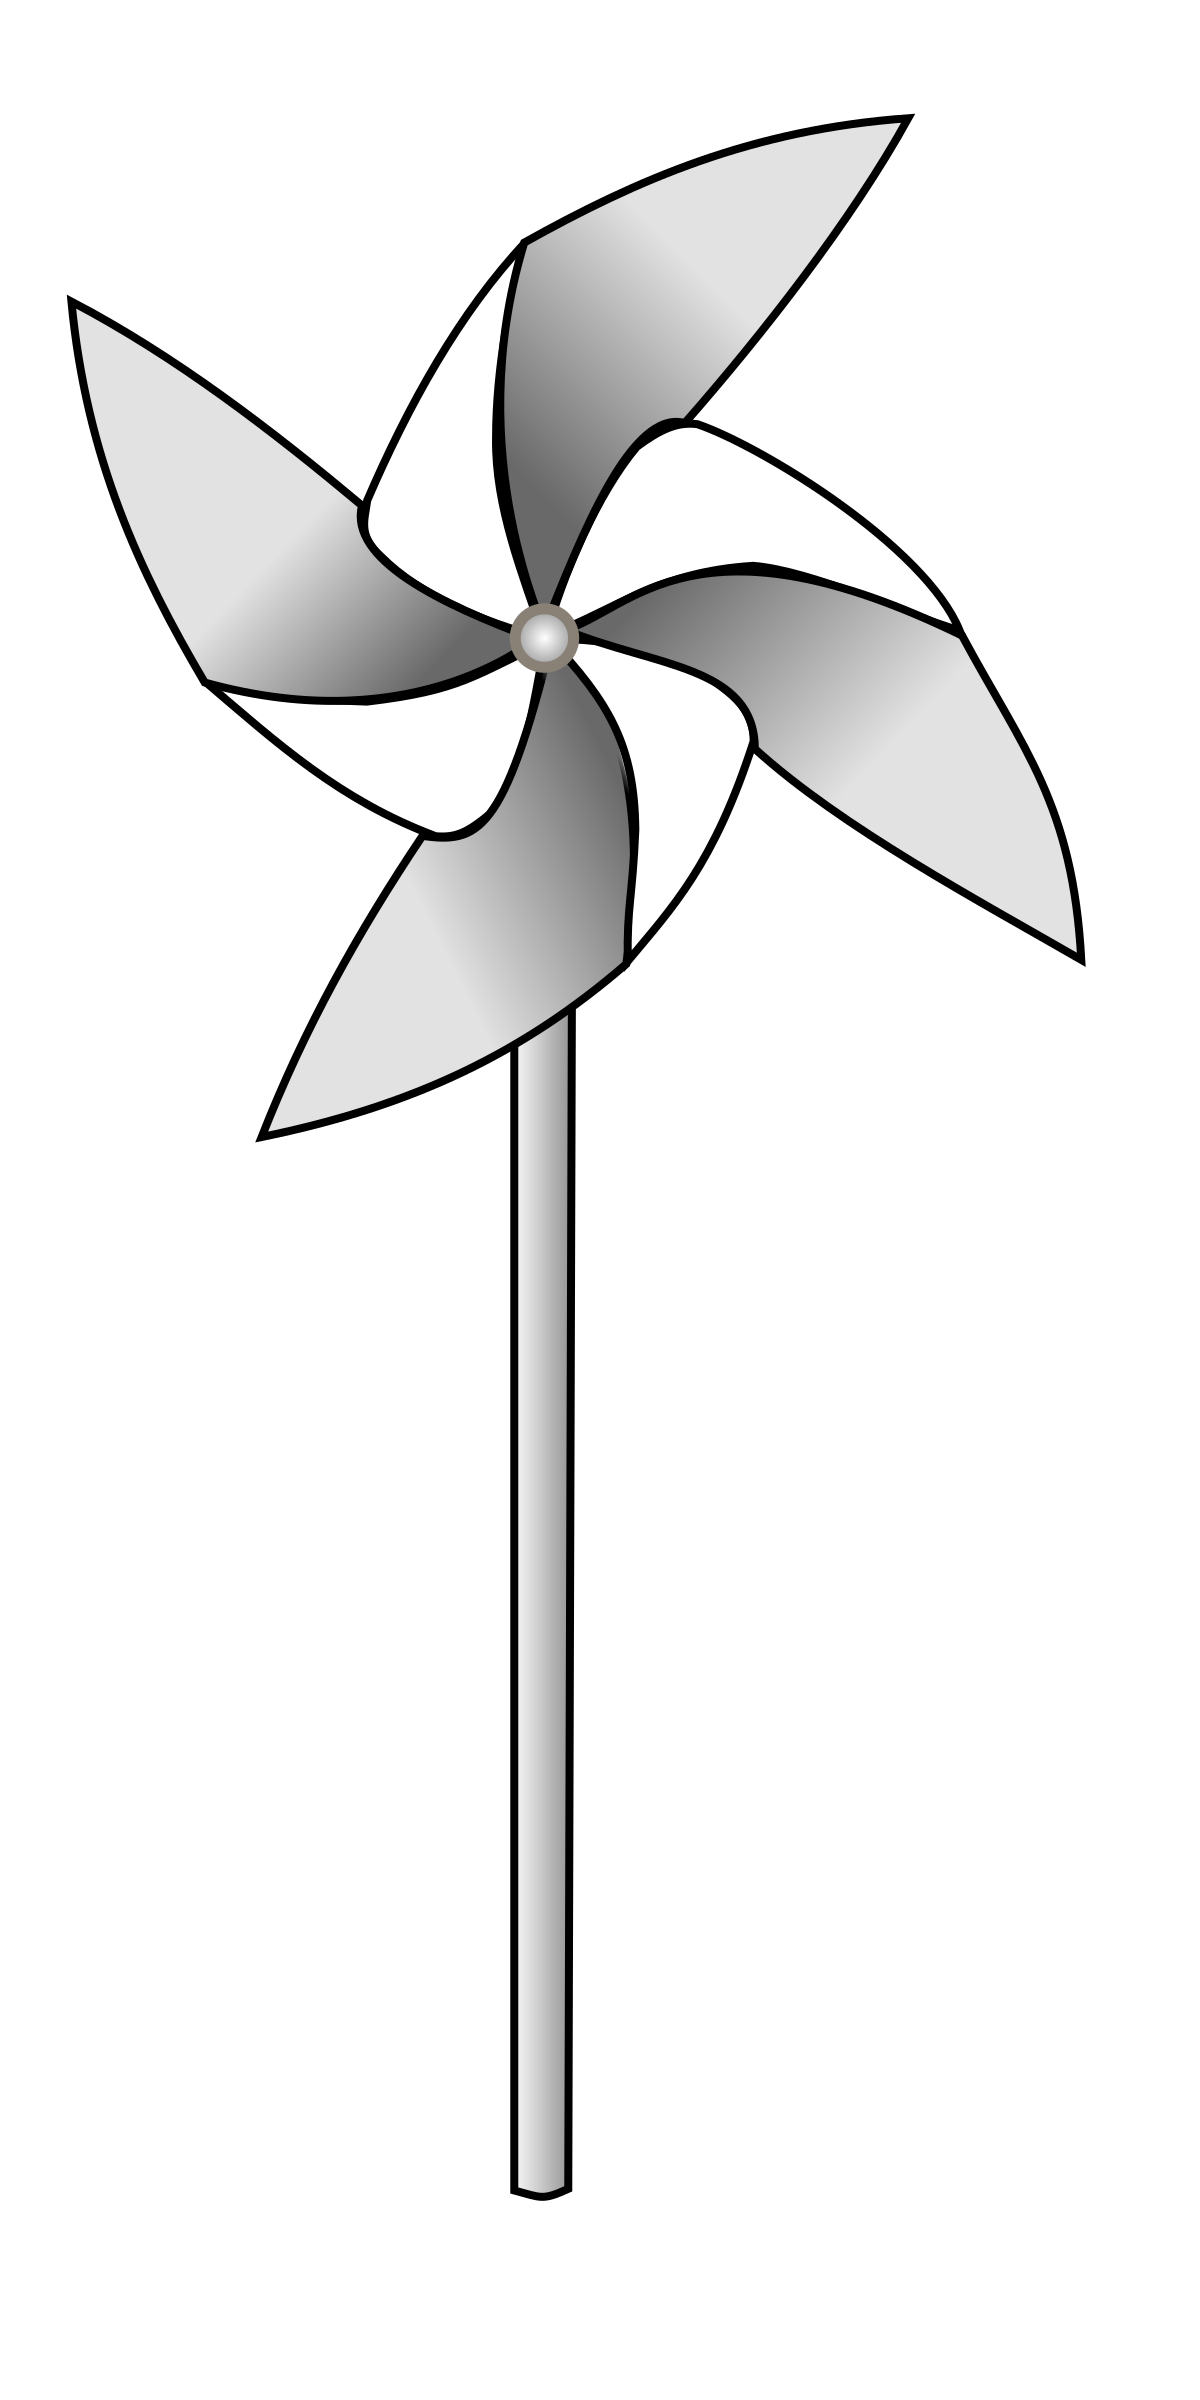 Pinwheel drawing black and white. Big clip art clipart